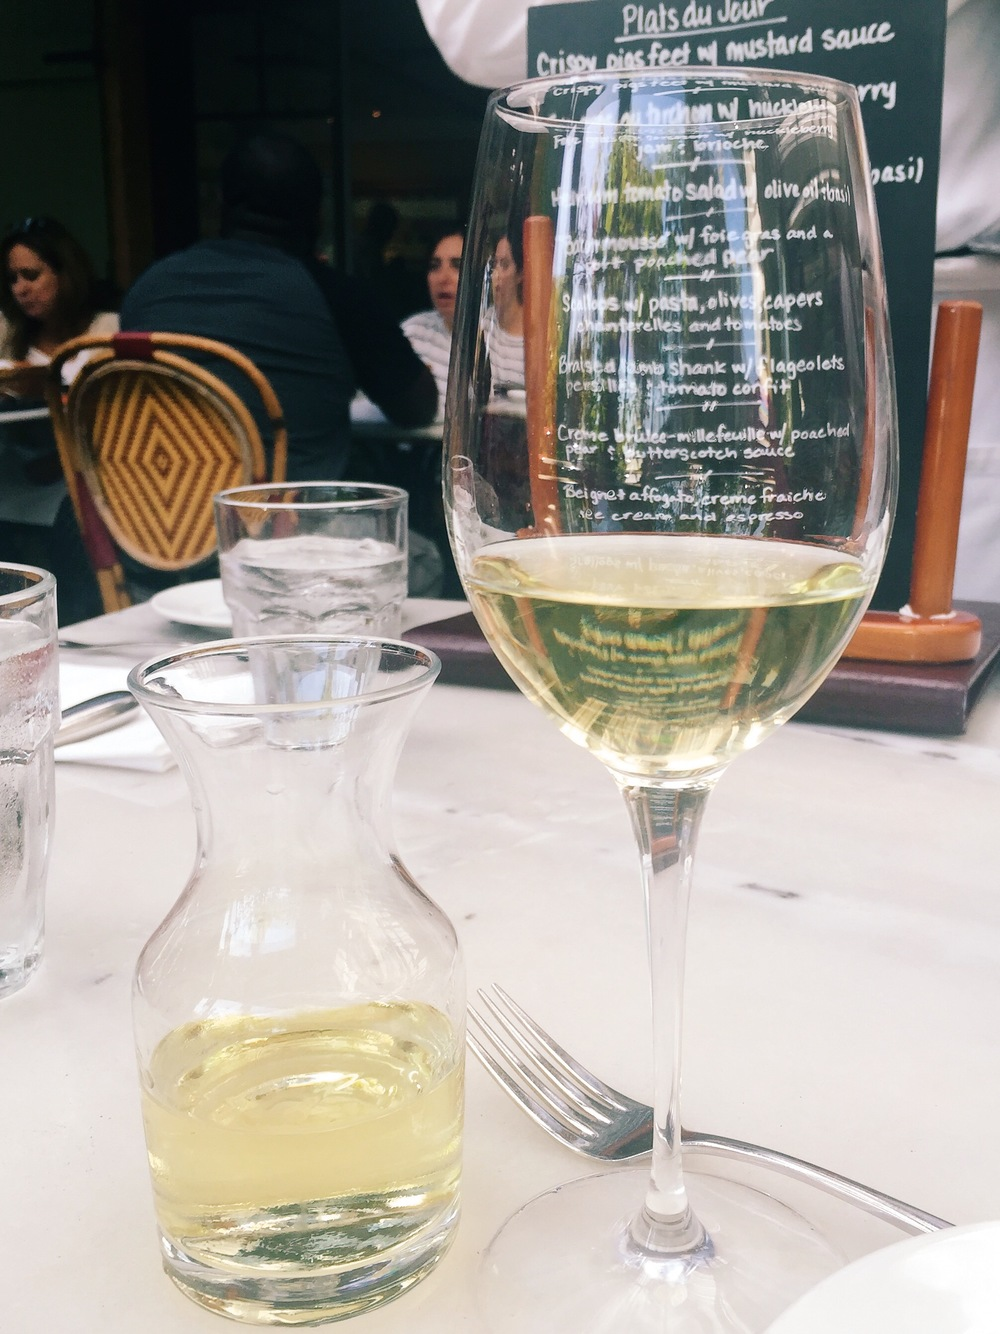 My favorite combo: a glass of excellent white wine and Bistro Jeanty.